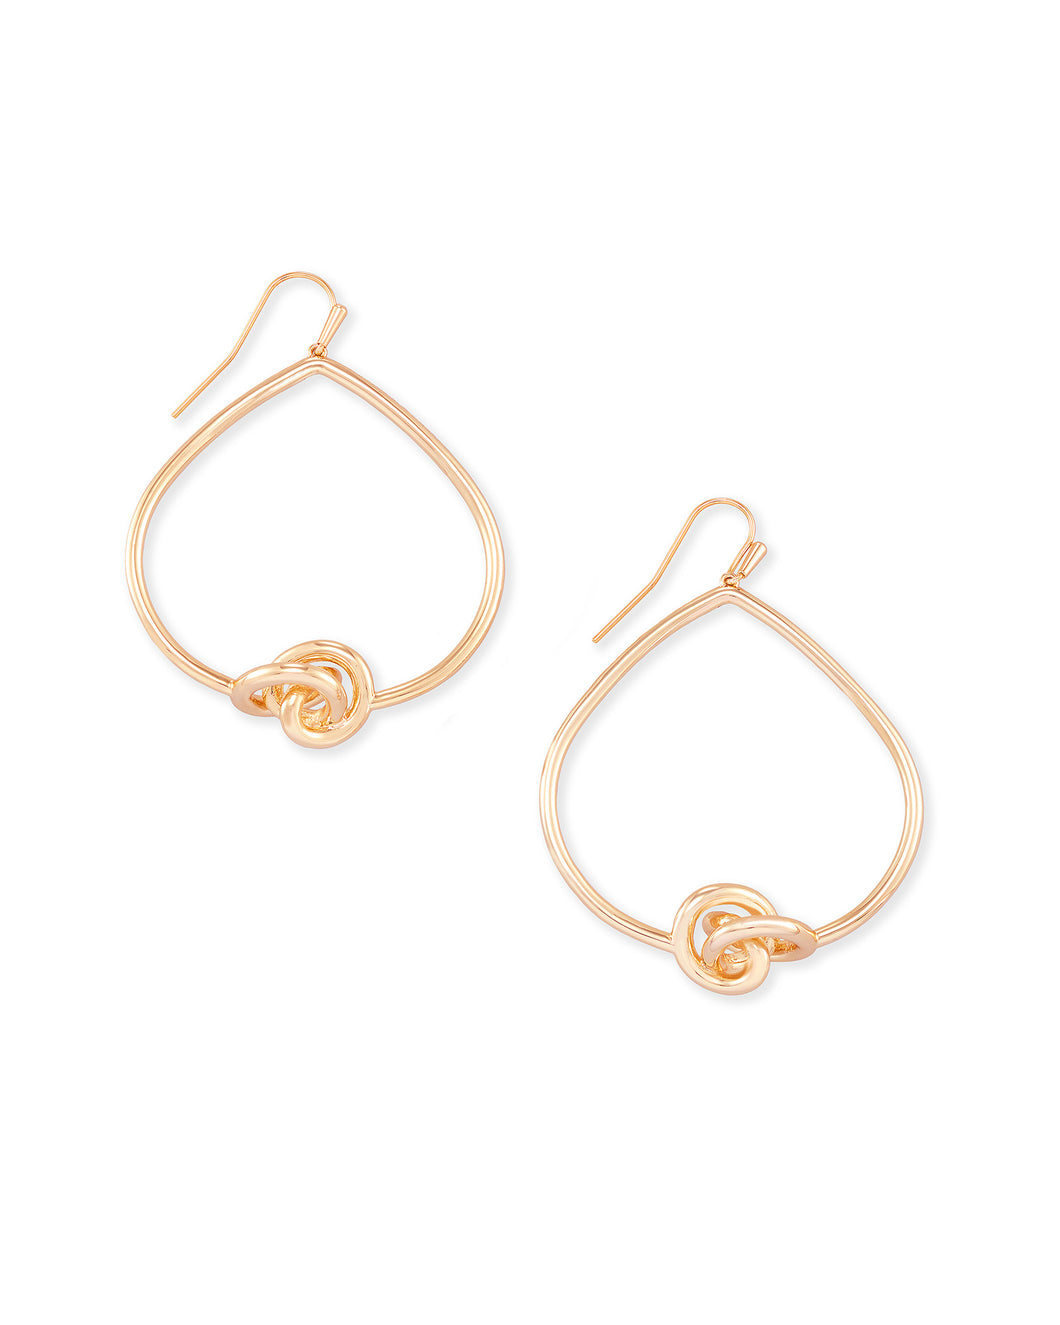 Presleigh Love Knot Open Frame Earrings in Rose Gold